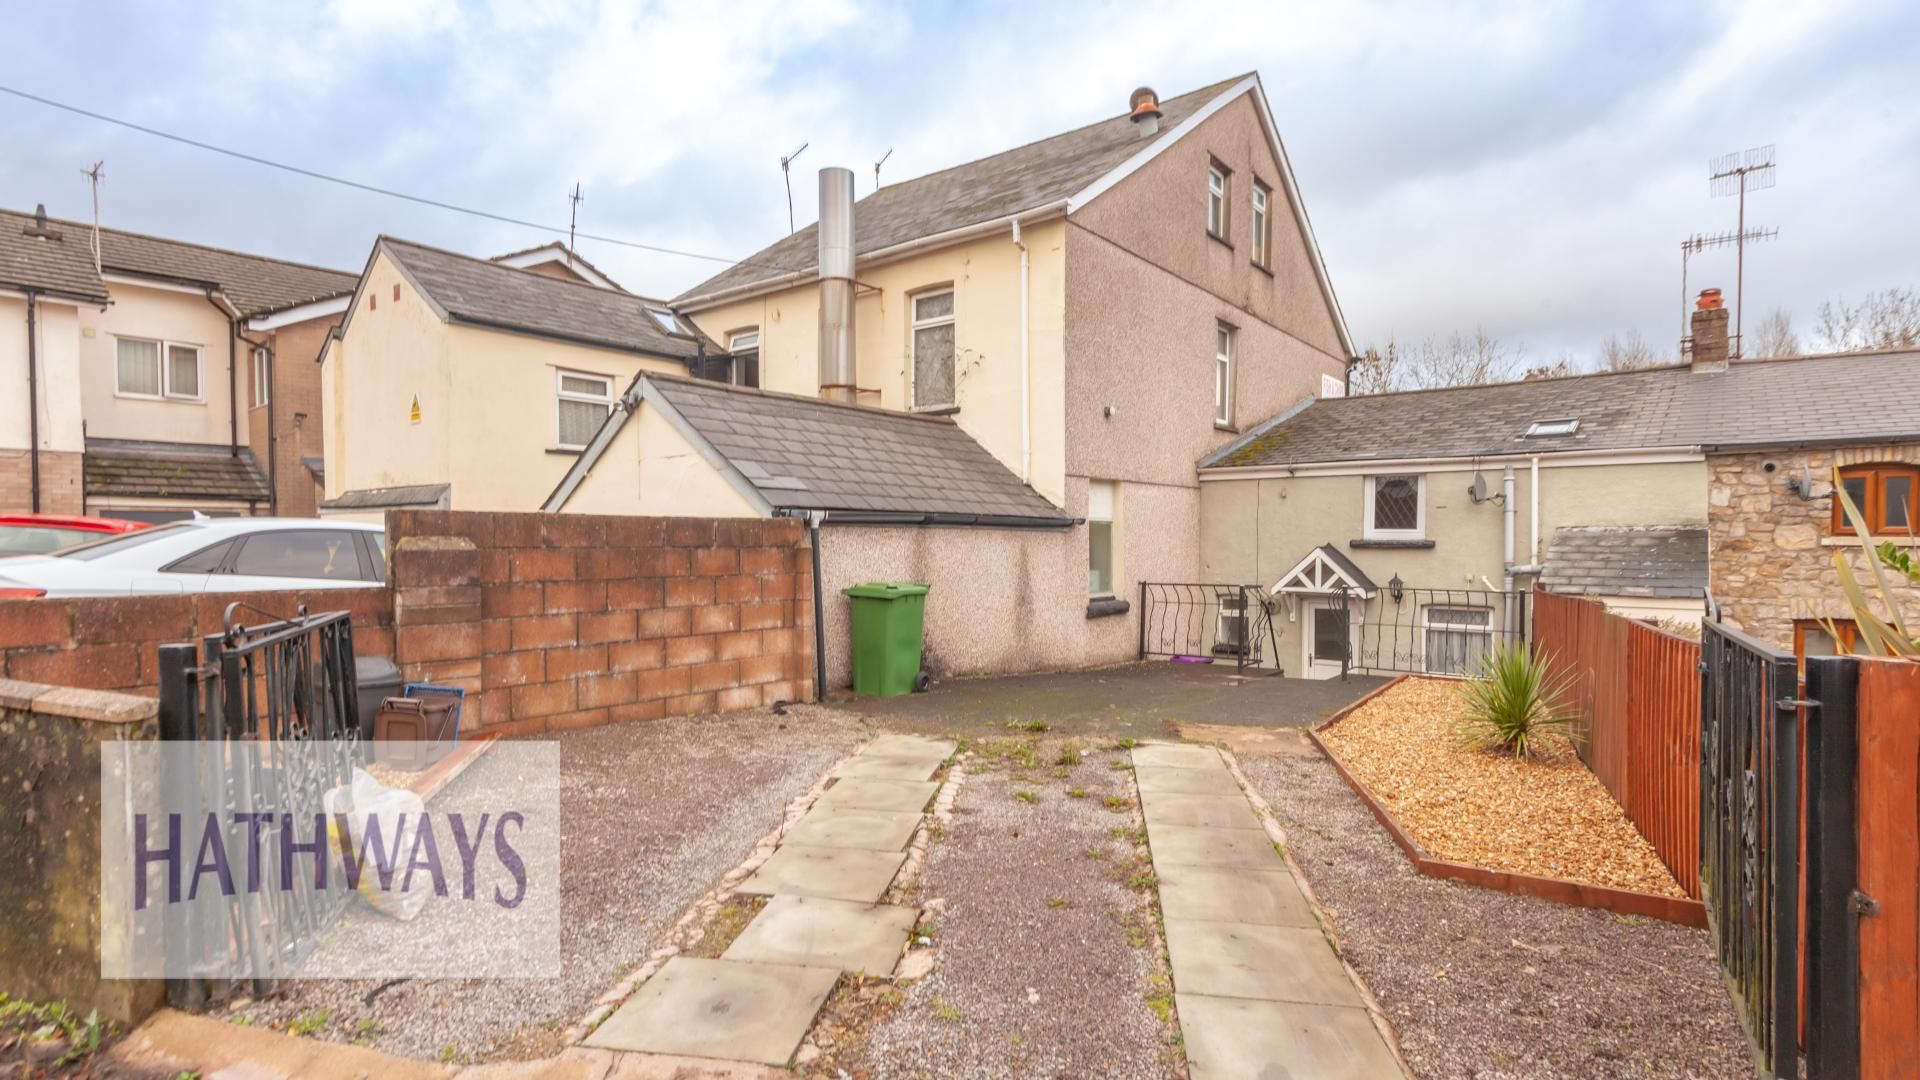 3 bed house for sale in St. Lukes Road  - Property Image 1